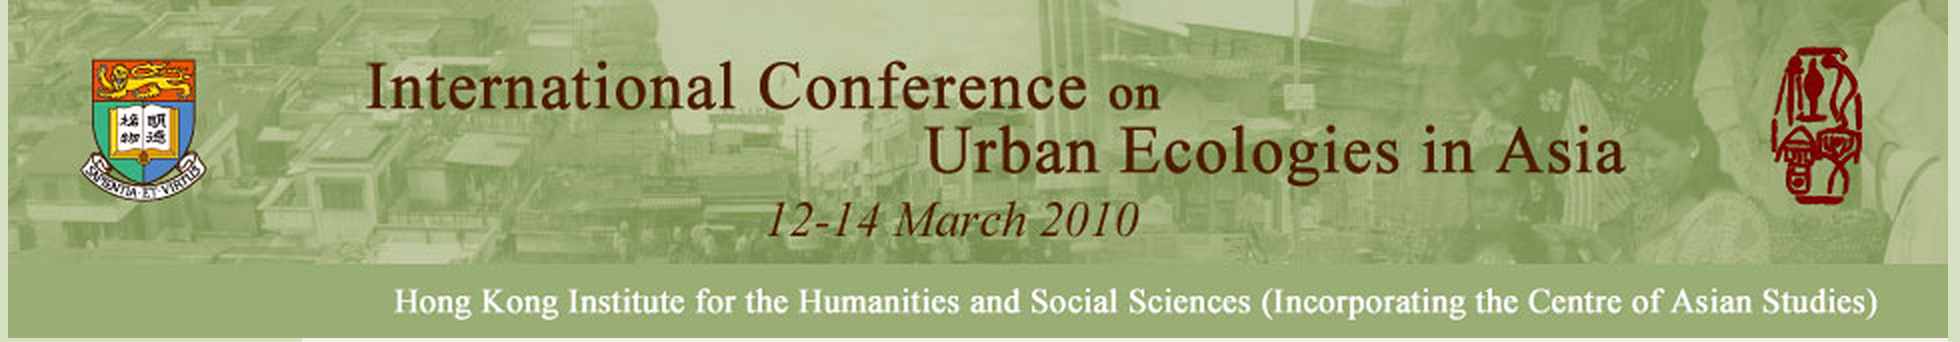 CFP of Interest: Ecologies of Urbanism in Asia II: Cities, Towns, and the Places of Nature